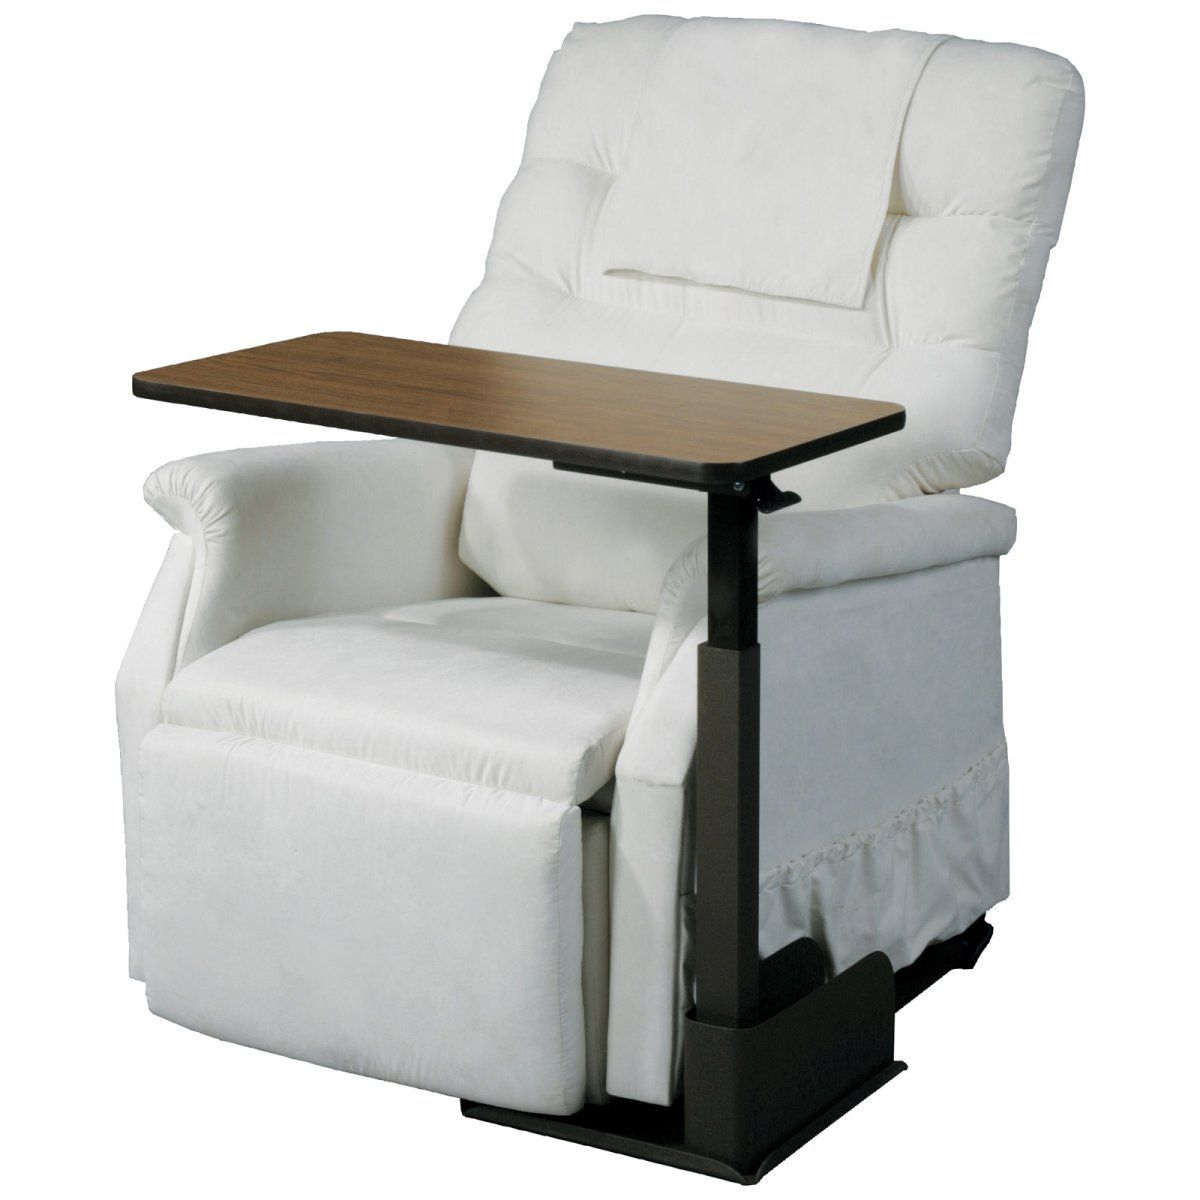 Lift chair table - Seat Life Chair Table The Handy Seat Life Chair Table Is Designed To Work With Lift Chairs But It Also Works Well With Standard Recliners Or Couches